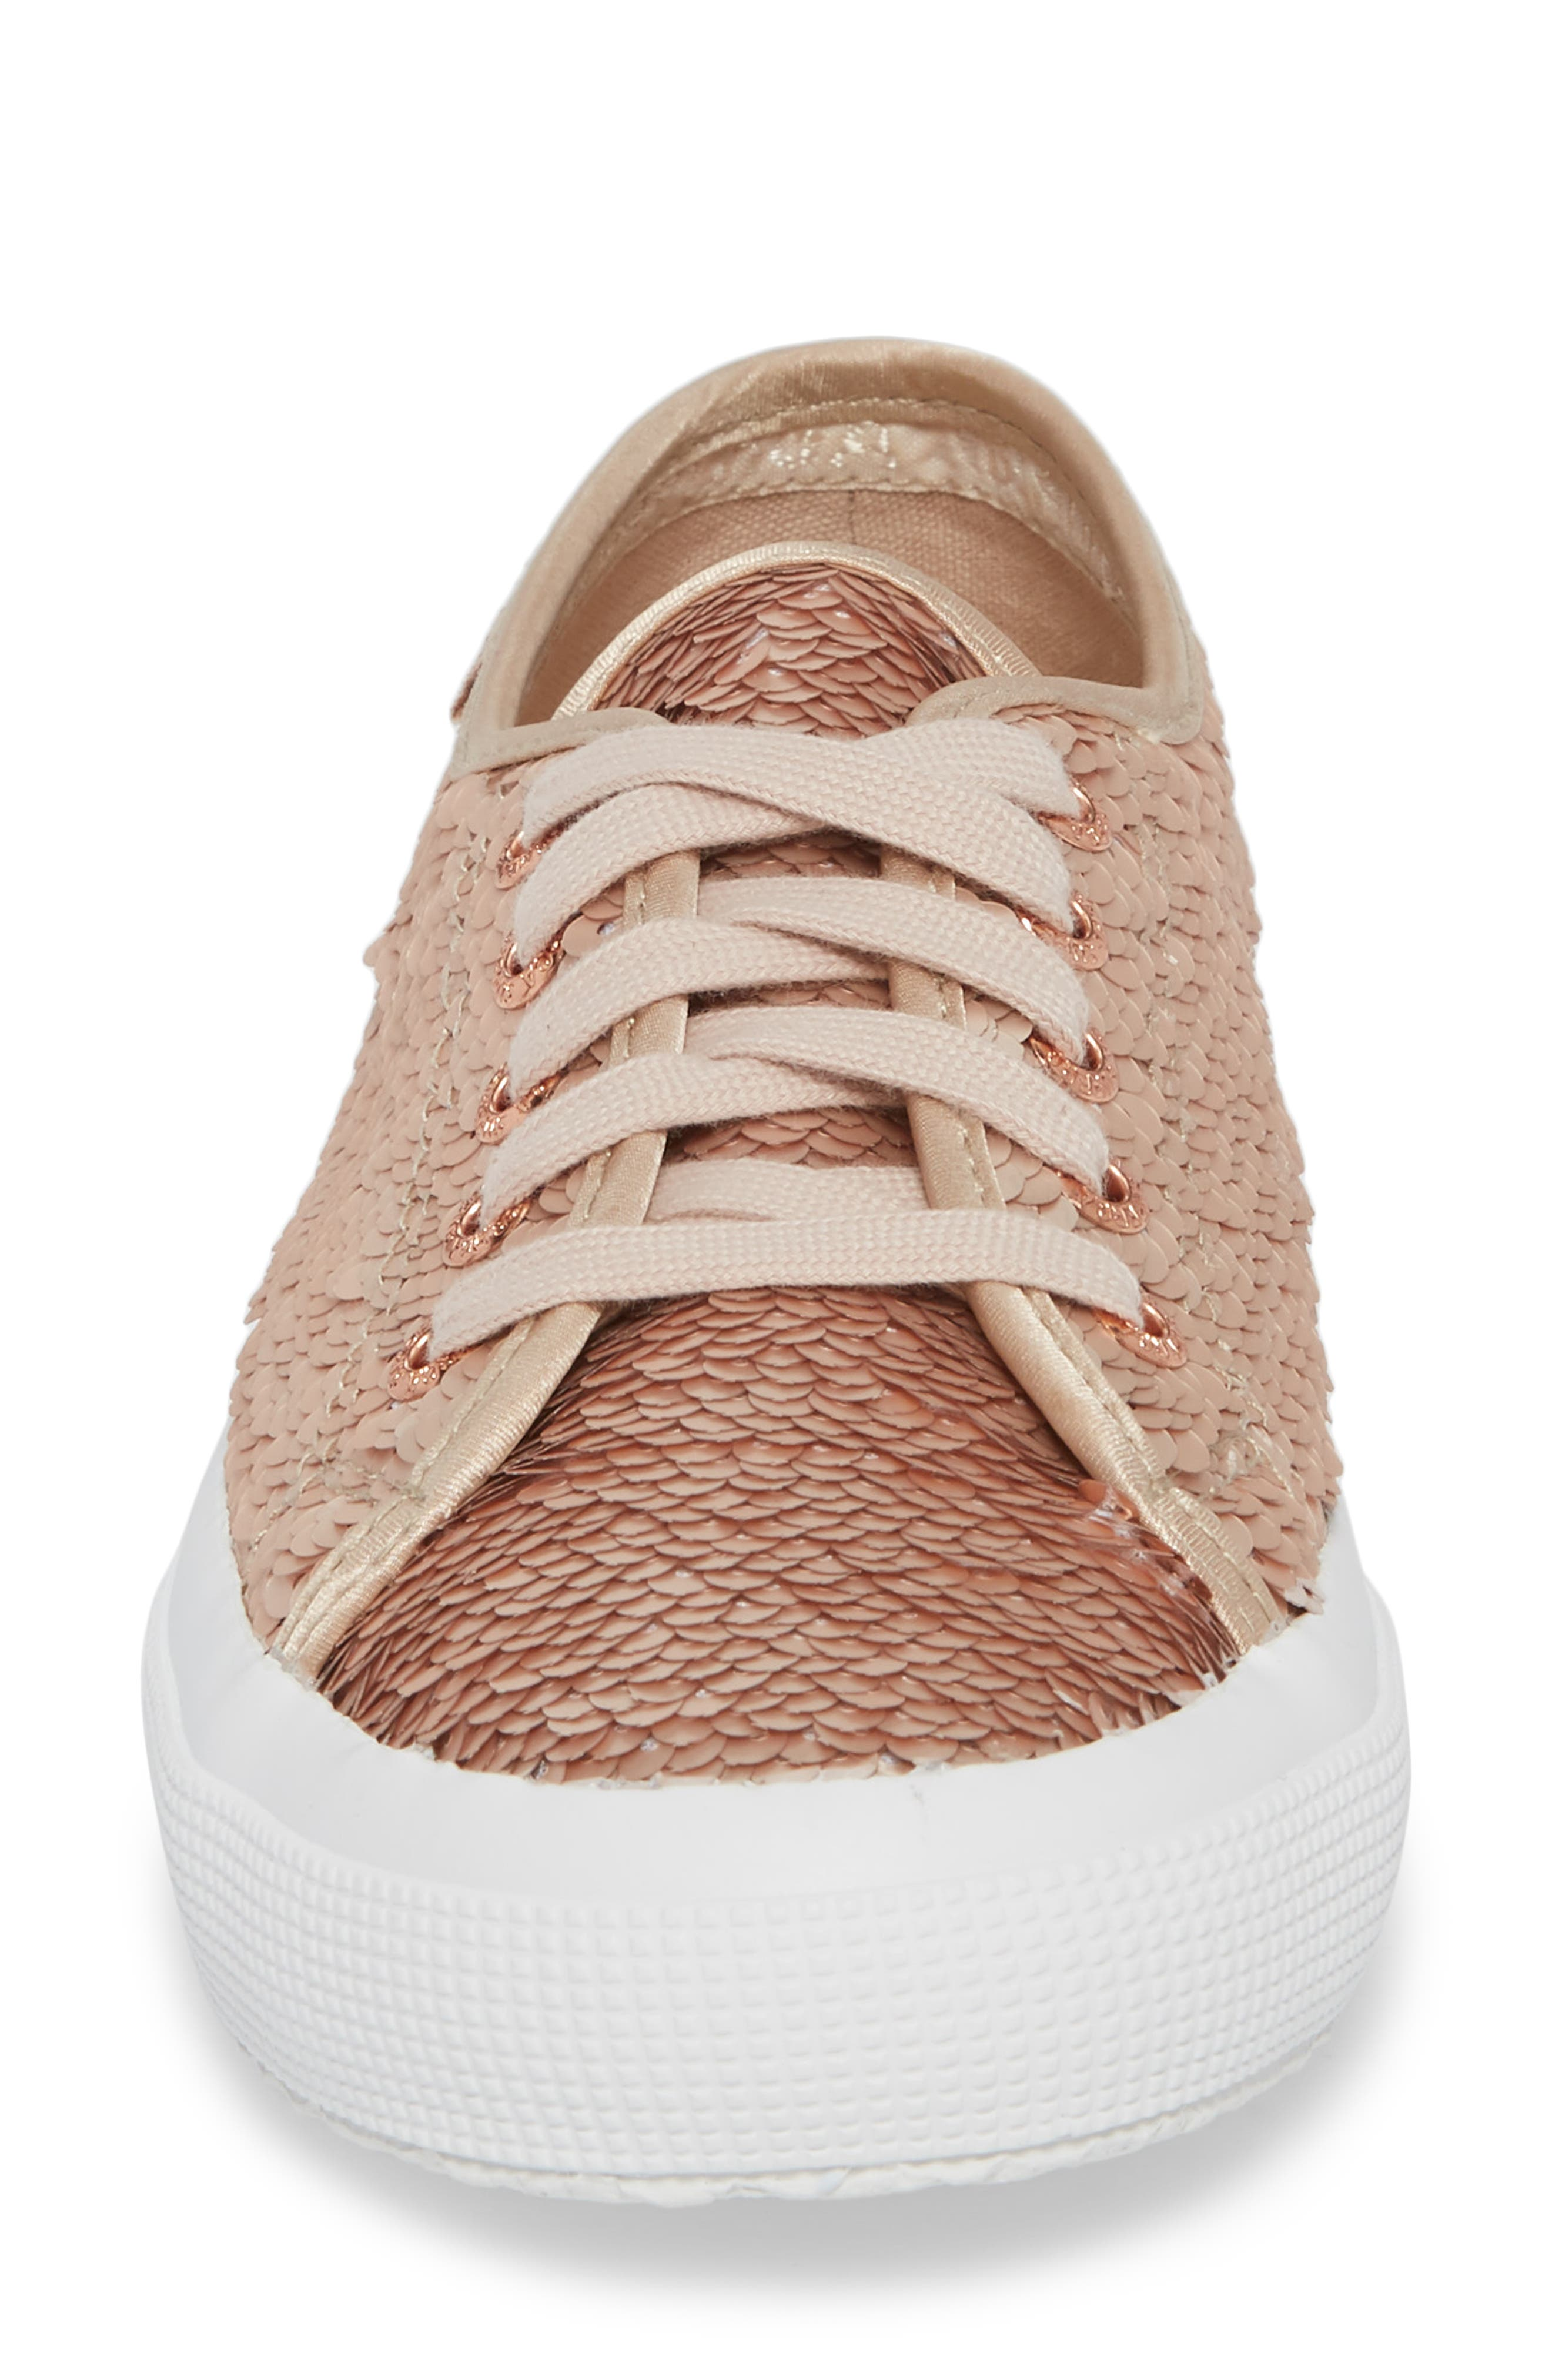 2750 Pairidescent Low Top Sneaker,                             Alternate thumbnail 4, color,                             Rose Gold/ Rose Gold